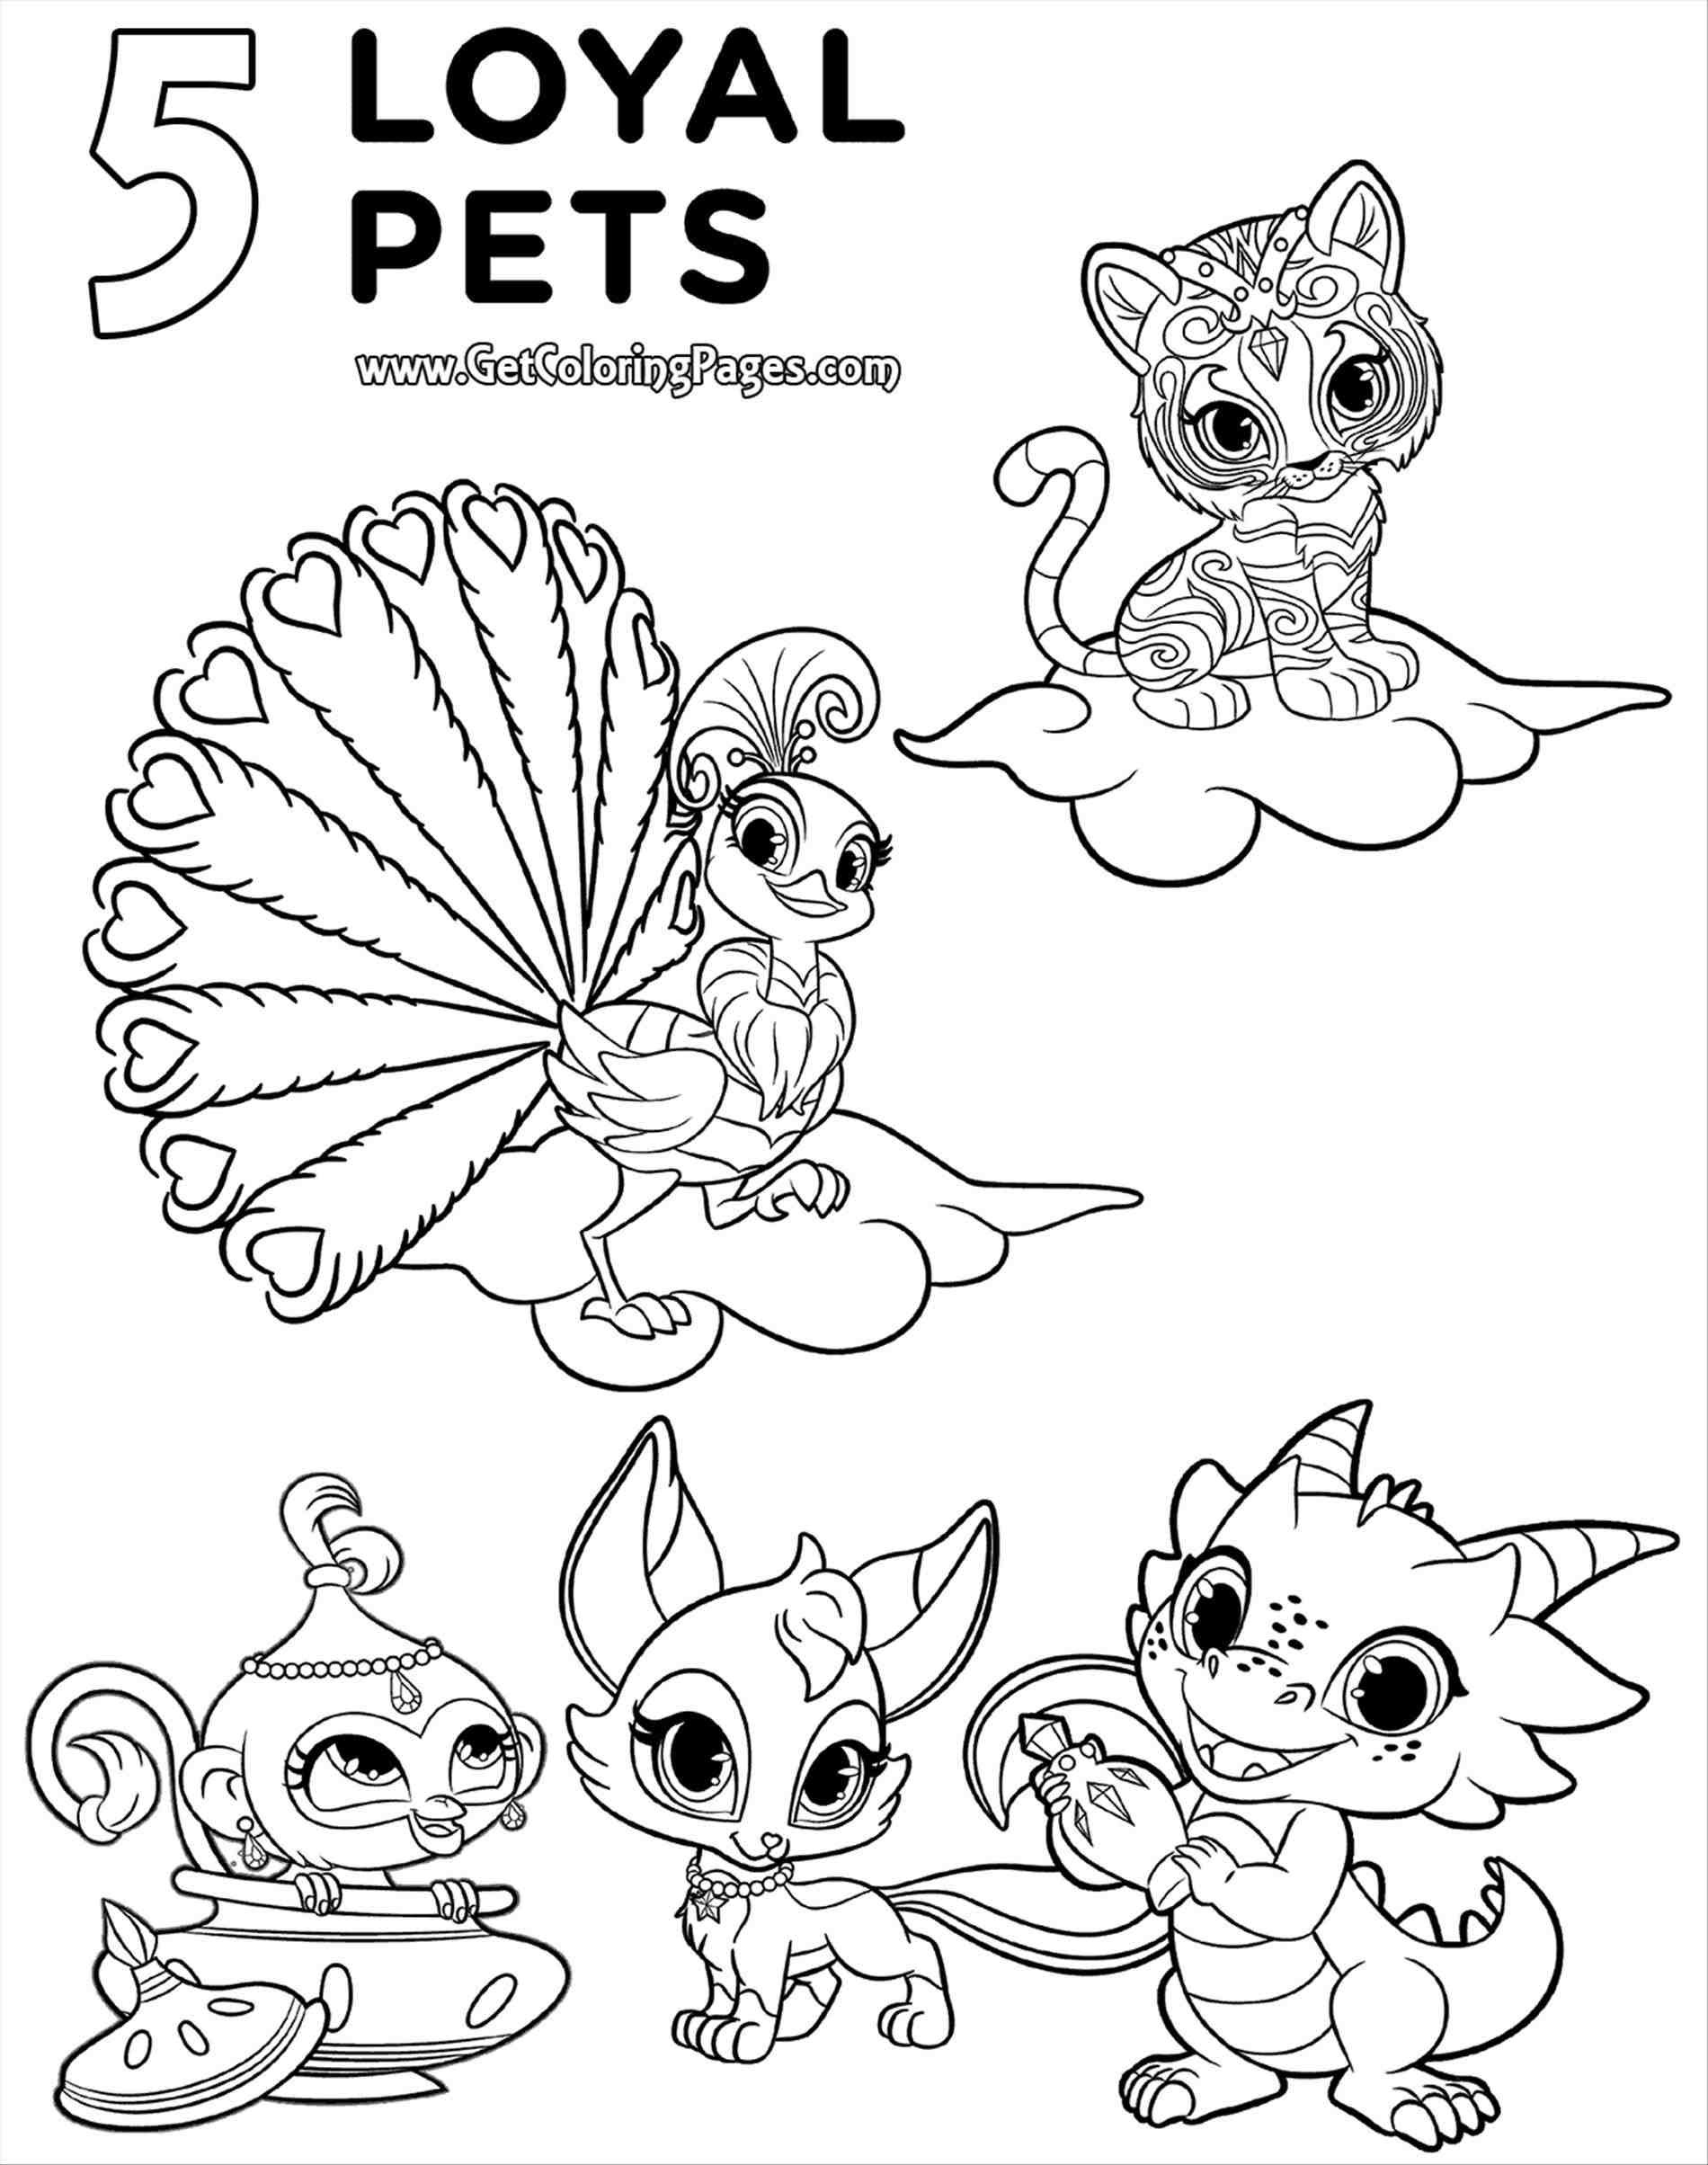 23 Nickelodeon Coloring Pages Download - Coloring Sheets